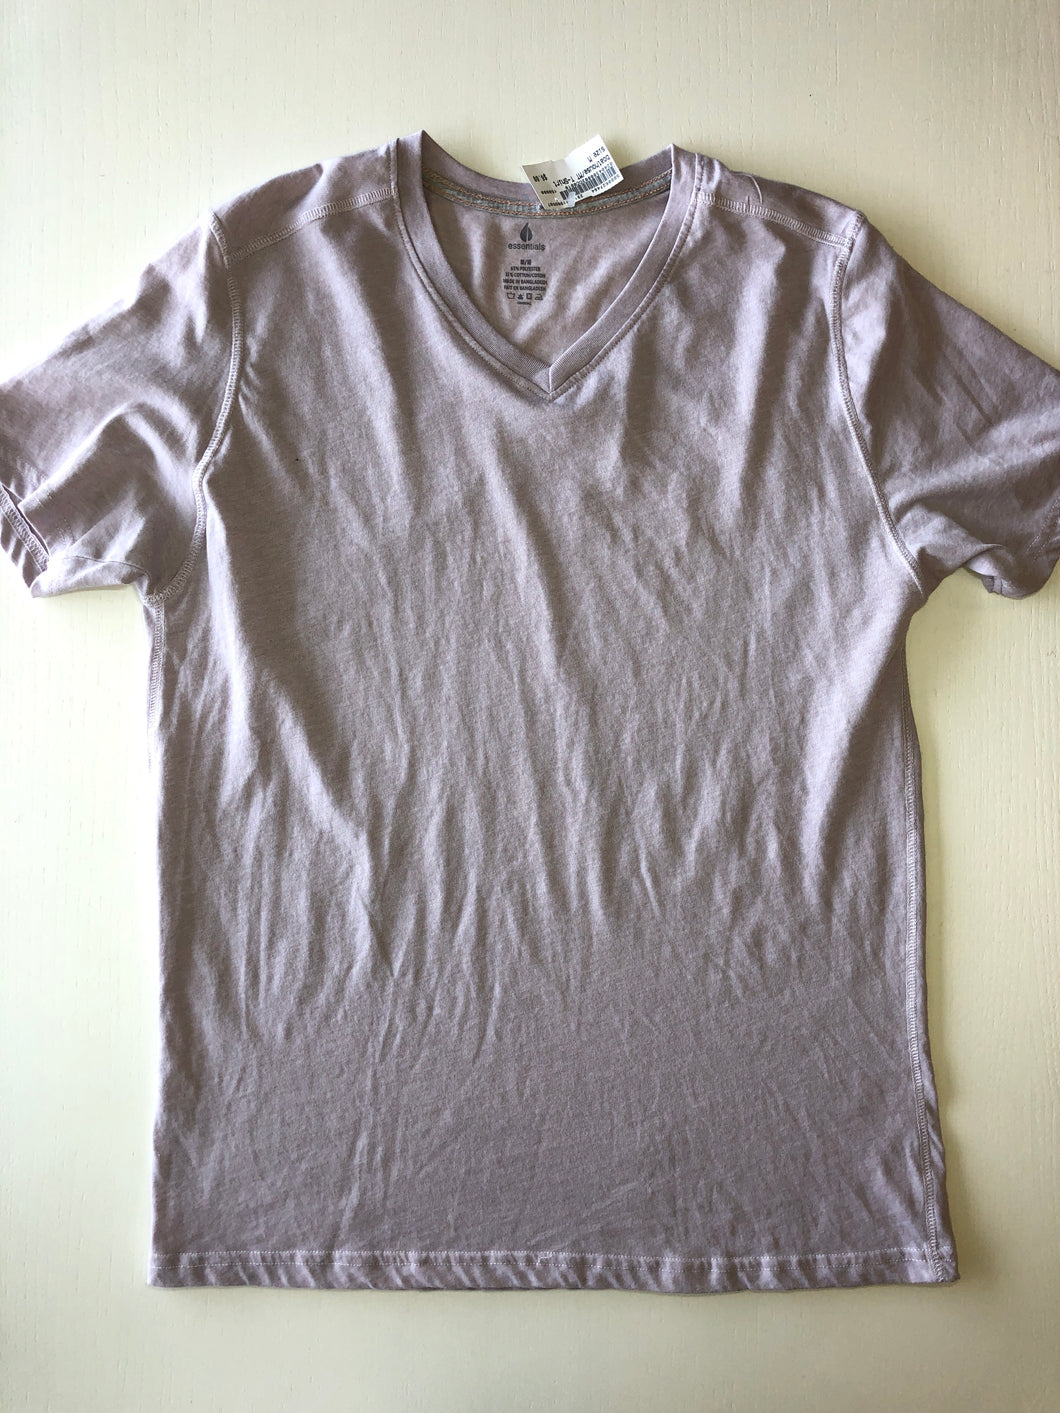 Gently Used Guys Boathouse Top Size M